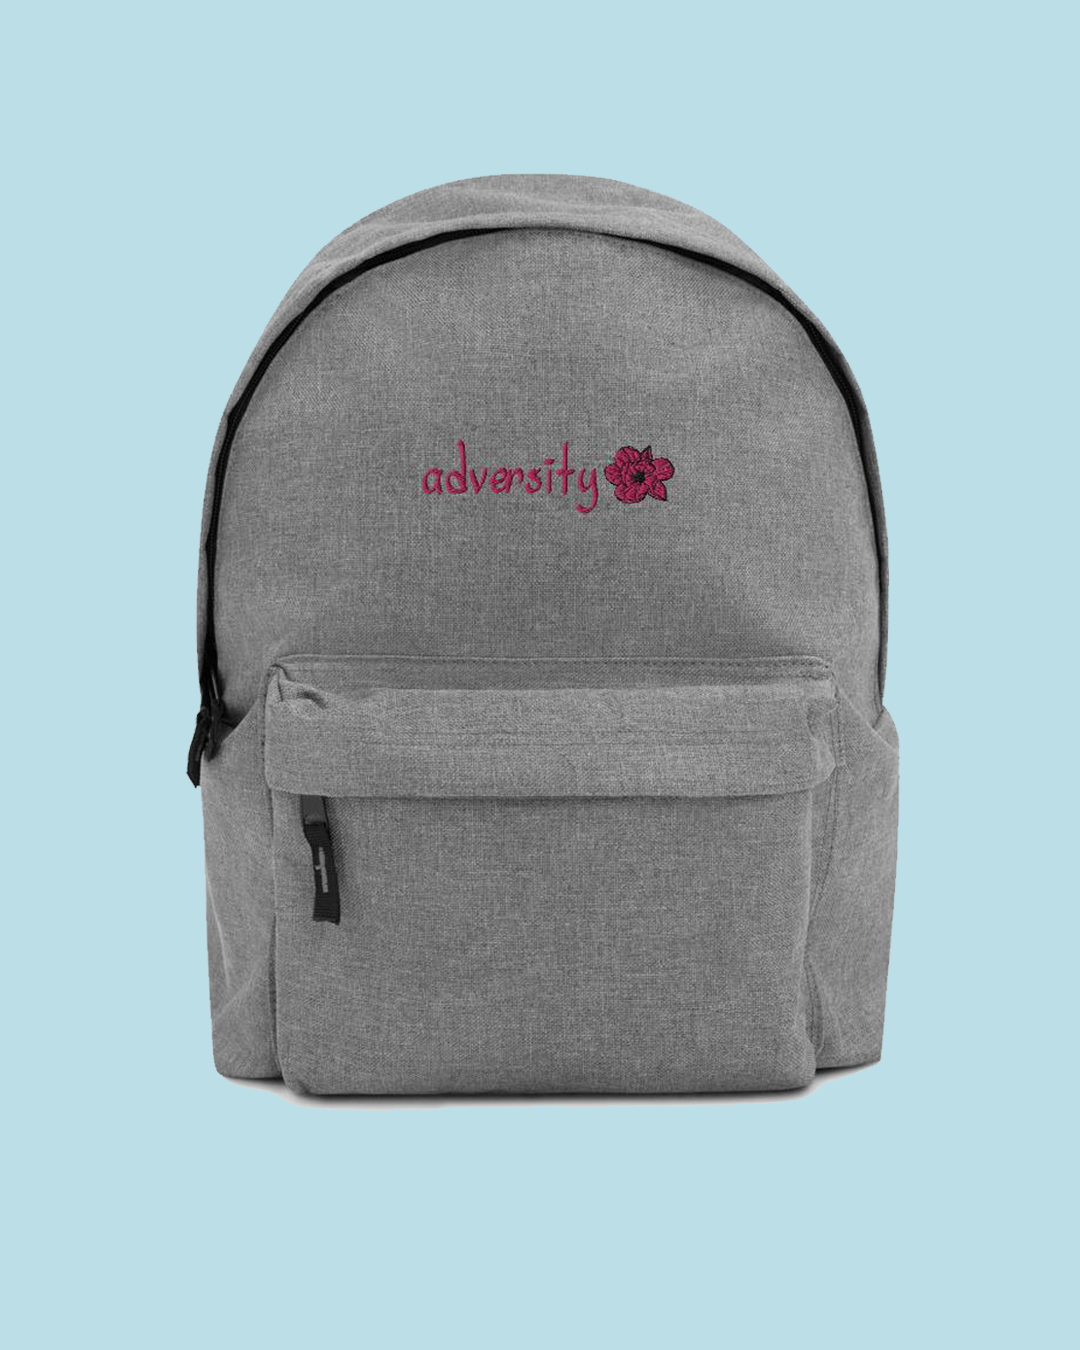 """Adversity"" Embroidered Backpack"